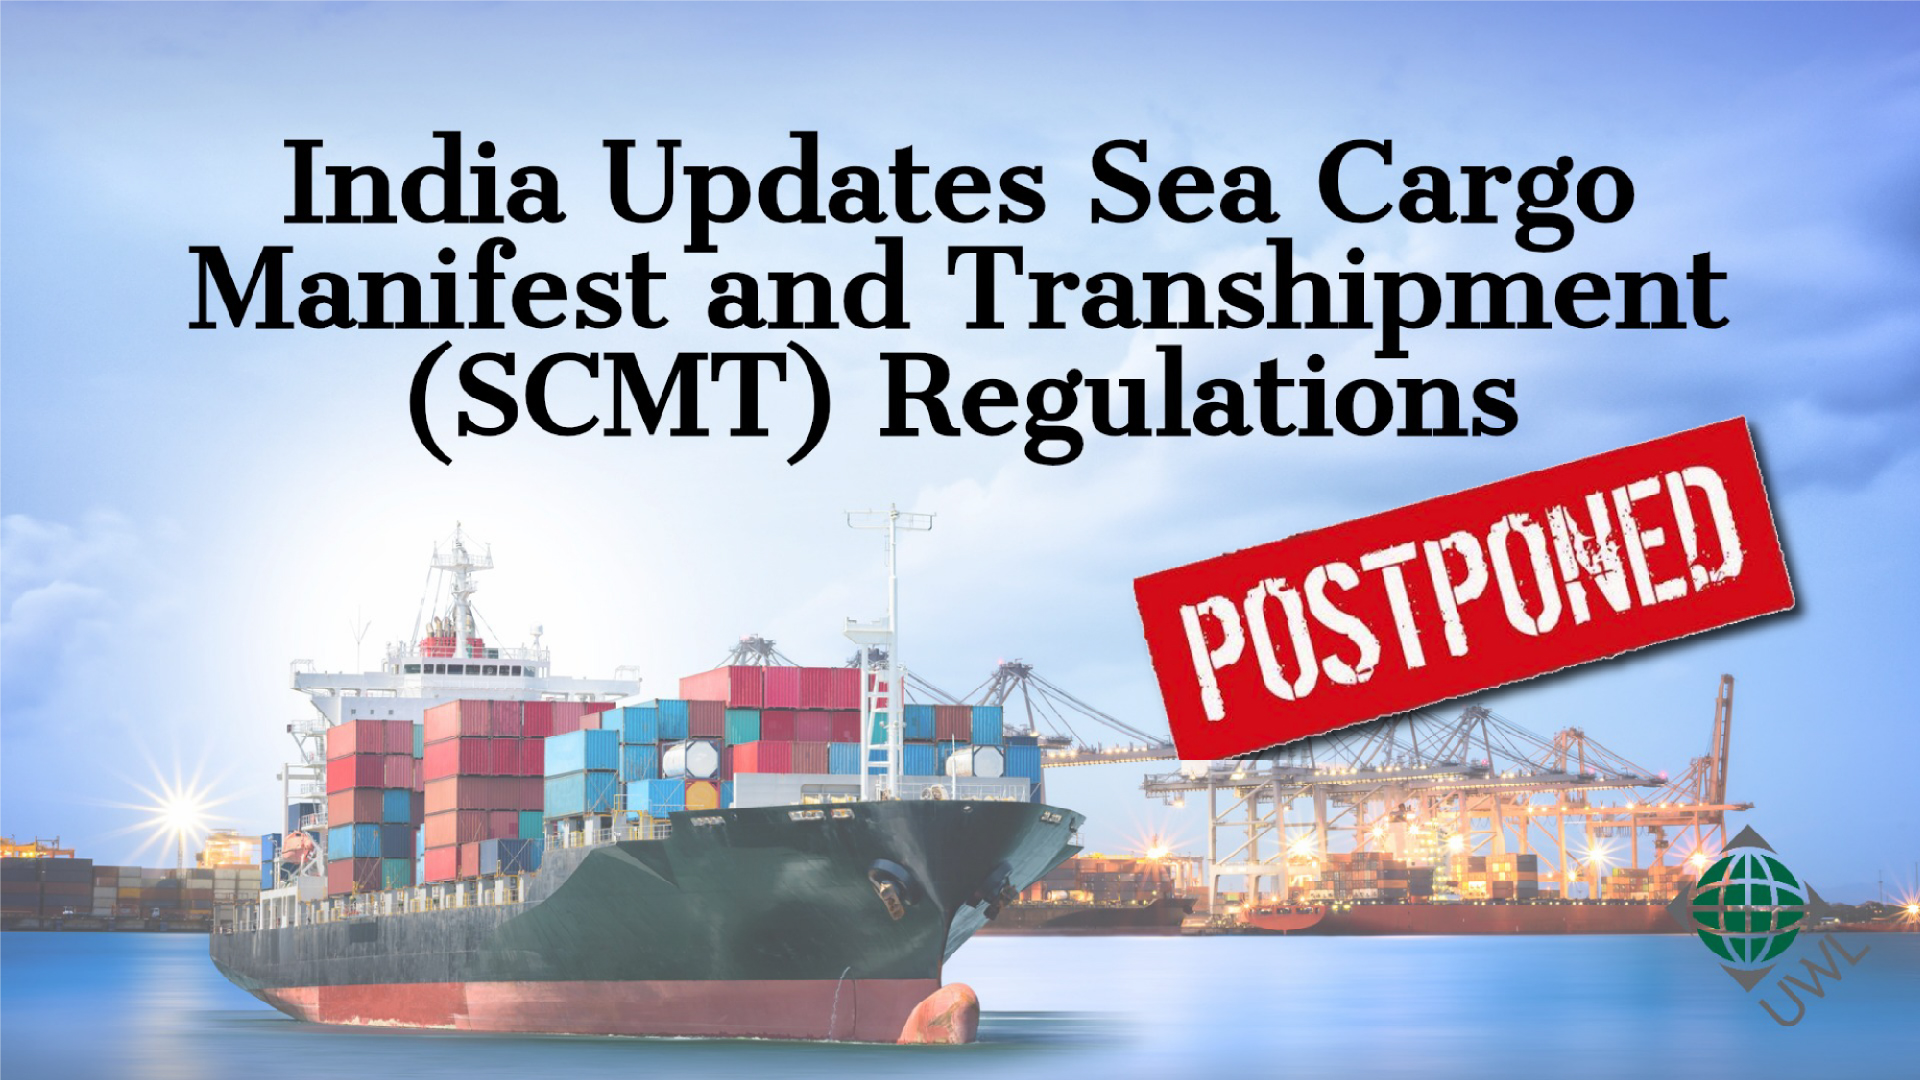 India Updates Sea Cargo Manifest and Transhipment (SCMT) Regulations Postponed Until November 1 2018